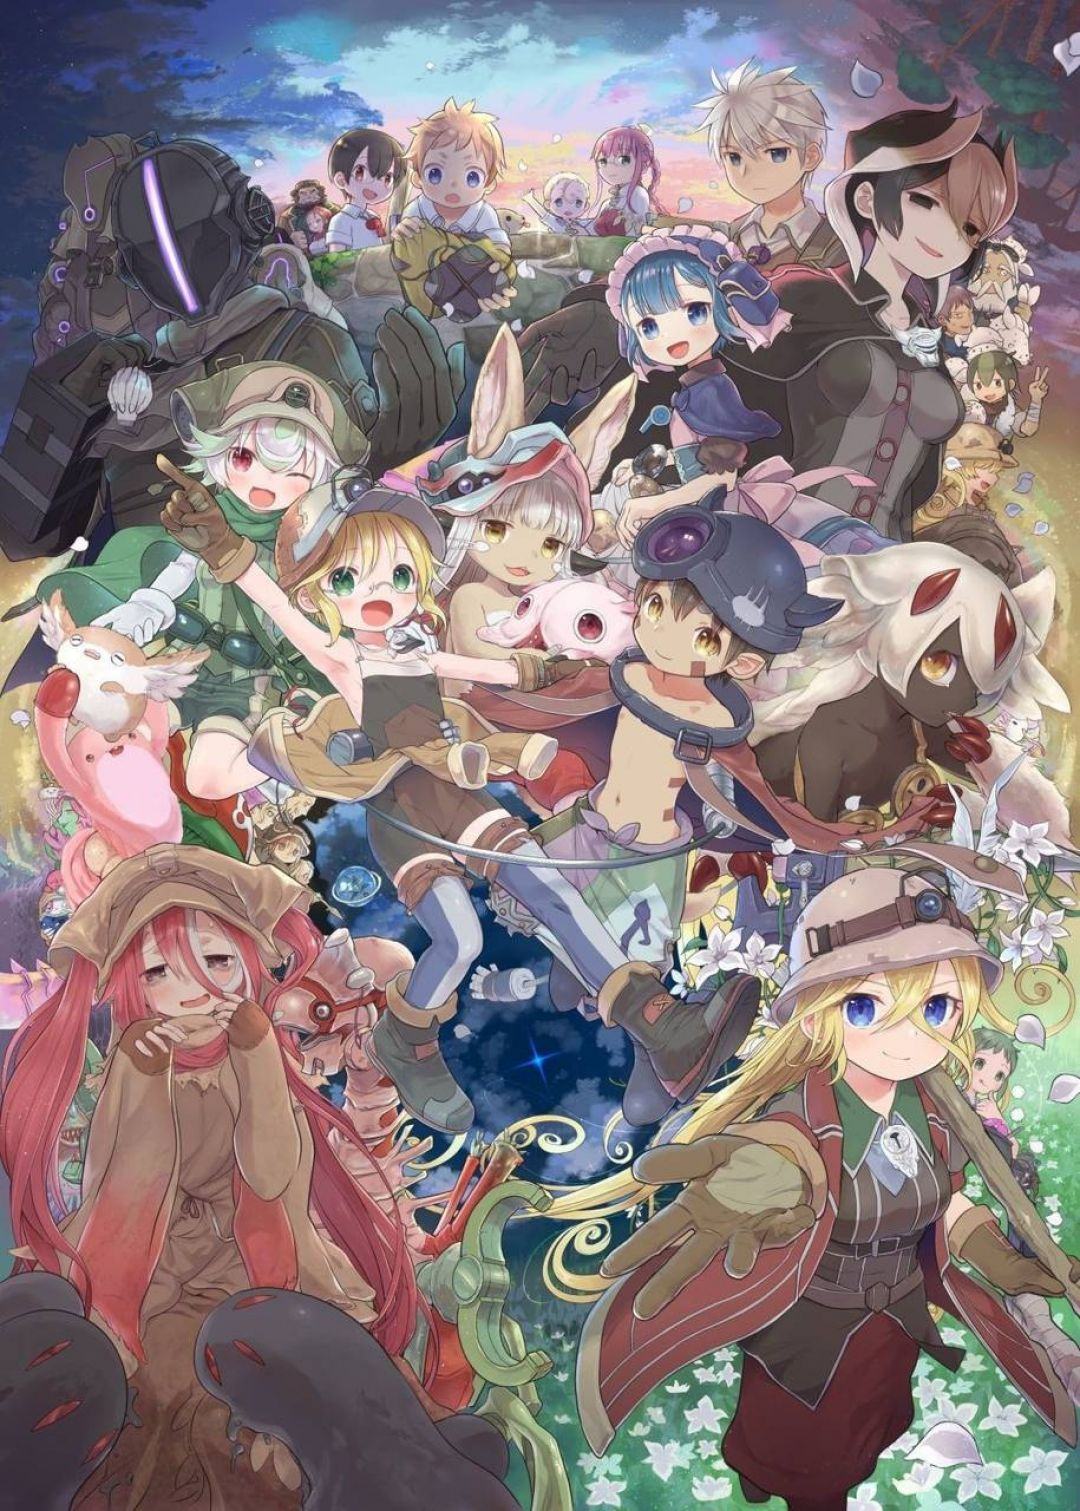 Made In Abyss Android Iphone Desktop Hd Backgrounds Wallpapers 1080p 4k 101079 Hdwallpapers Androidwallpapers Anime Anime Wallpaper Kawaii Anime